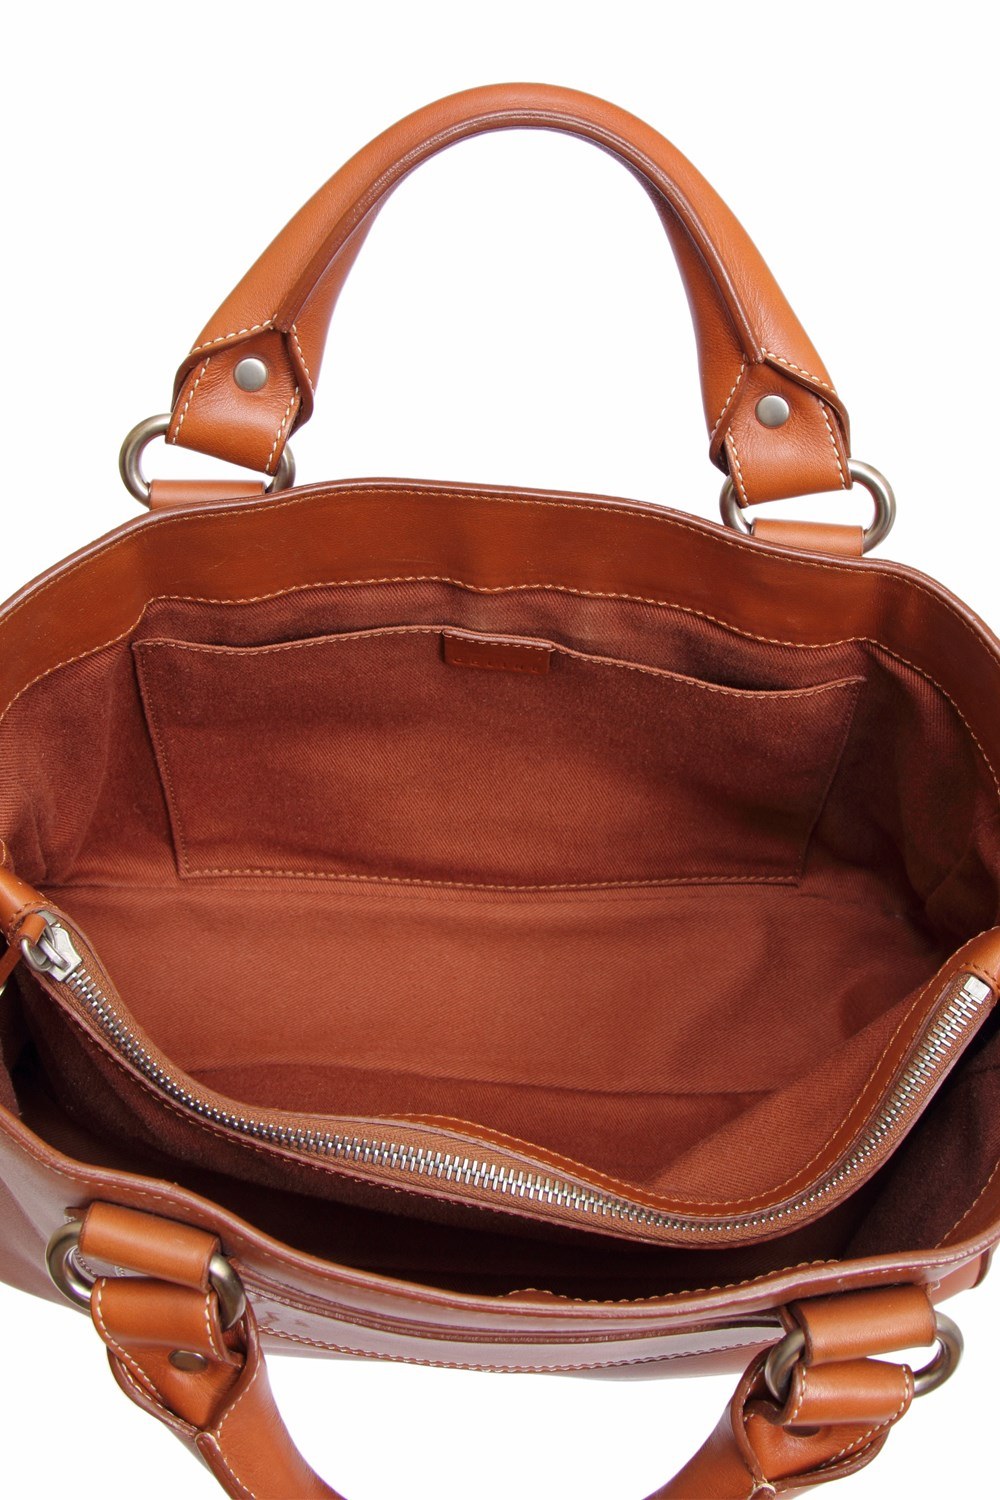 Boogie Brown Leather Tote Bag, Totes, Buy Handbags, Bags, Starbags ...